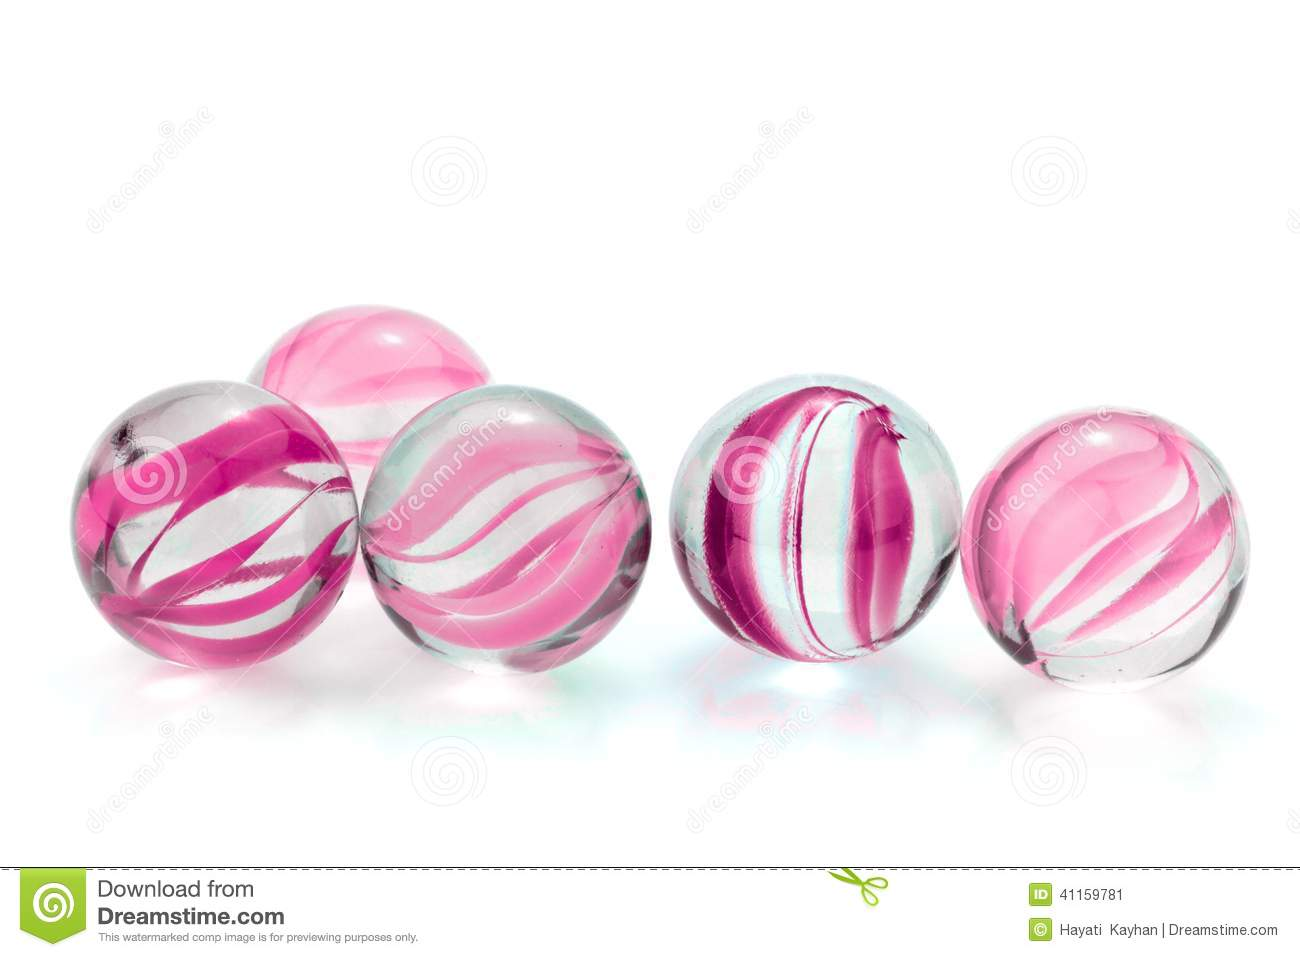 Pink Glass Marbles Stock Photo Image 41159781 : pink glass marbles isolated white background 41159781 from www.dreamstime.com size 1300 x 957 jpeg 63kB